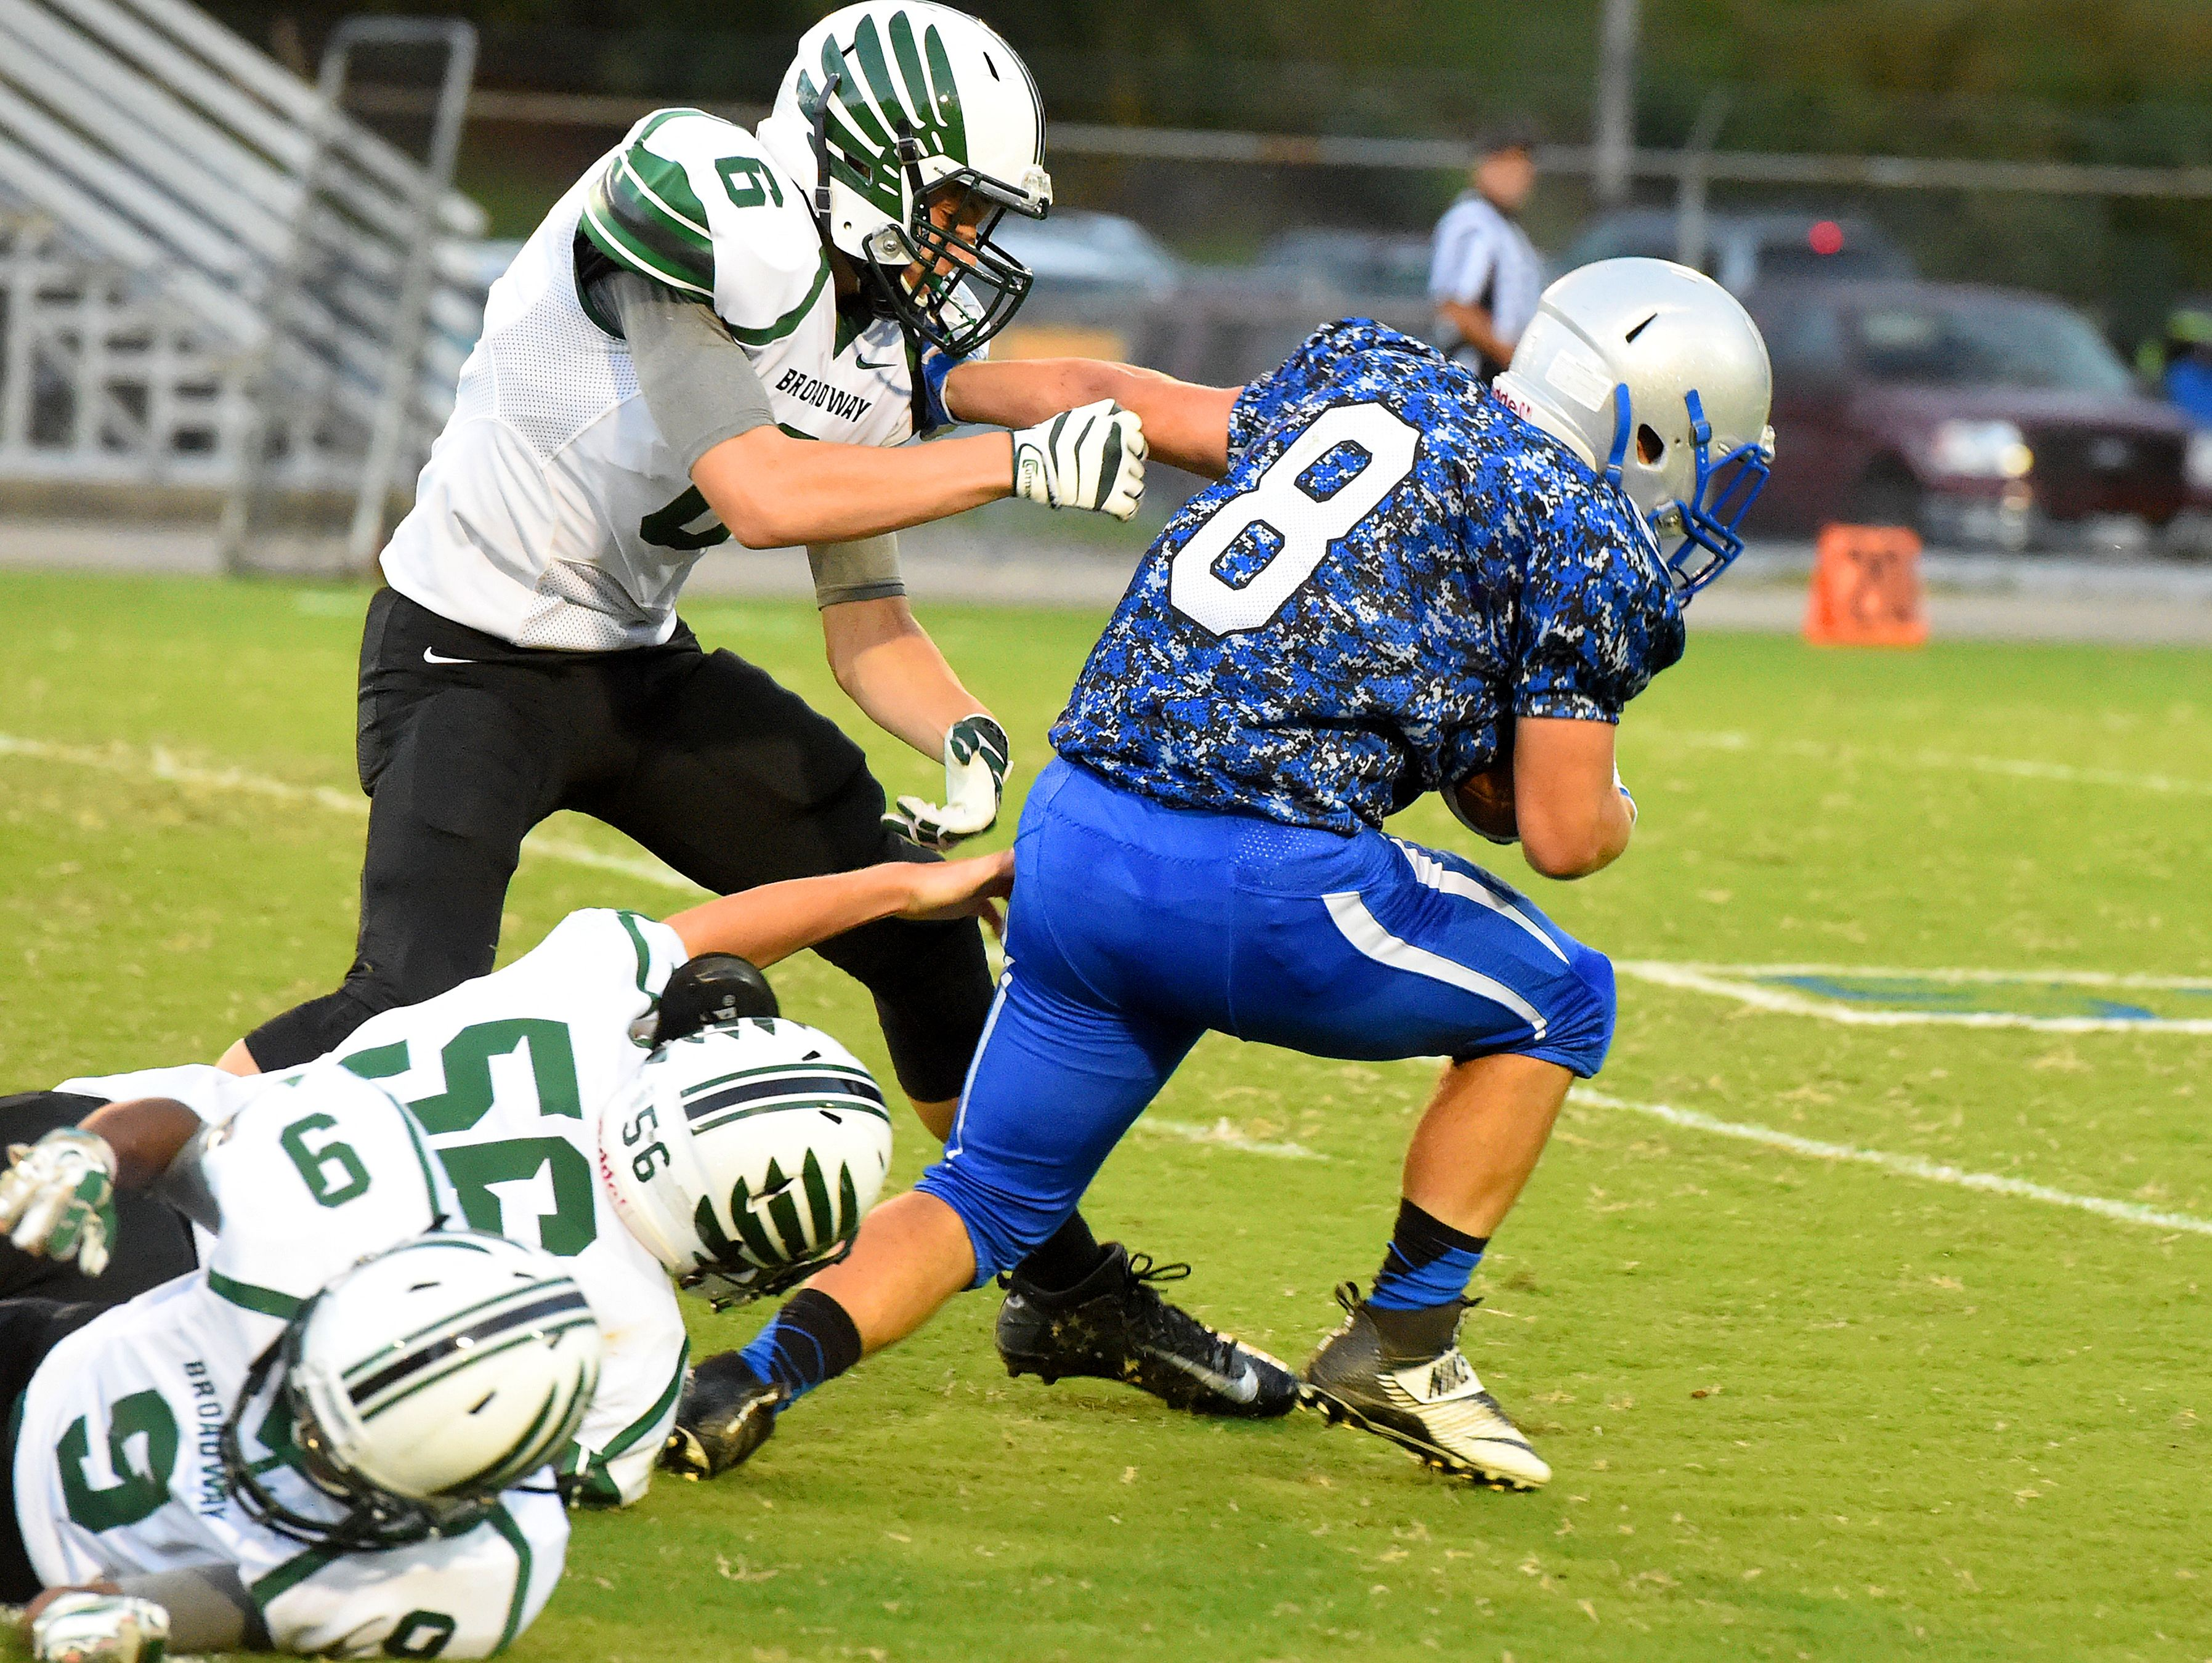 Robert E. Lee's Garrett Lawler fights to break a tackle by Broadway's Christopher Jacobs, Michael Fewell and Caleb Williams during a football game played in Staunton on Monday, Oct. 3, 2016.